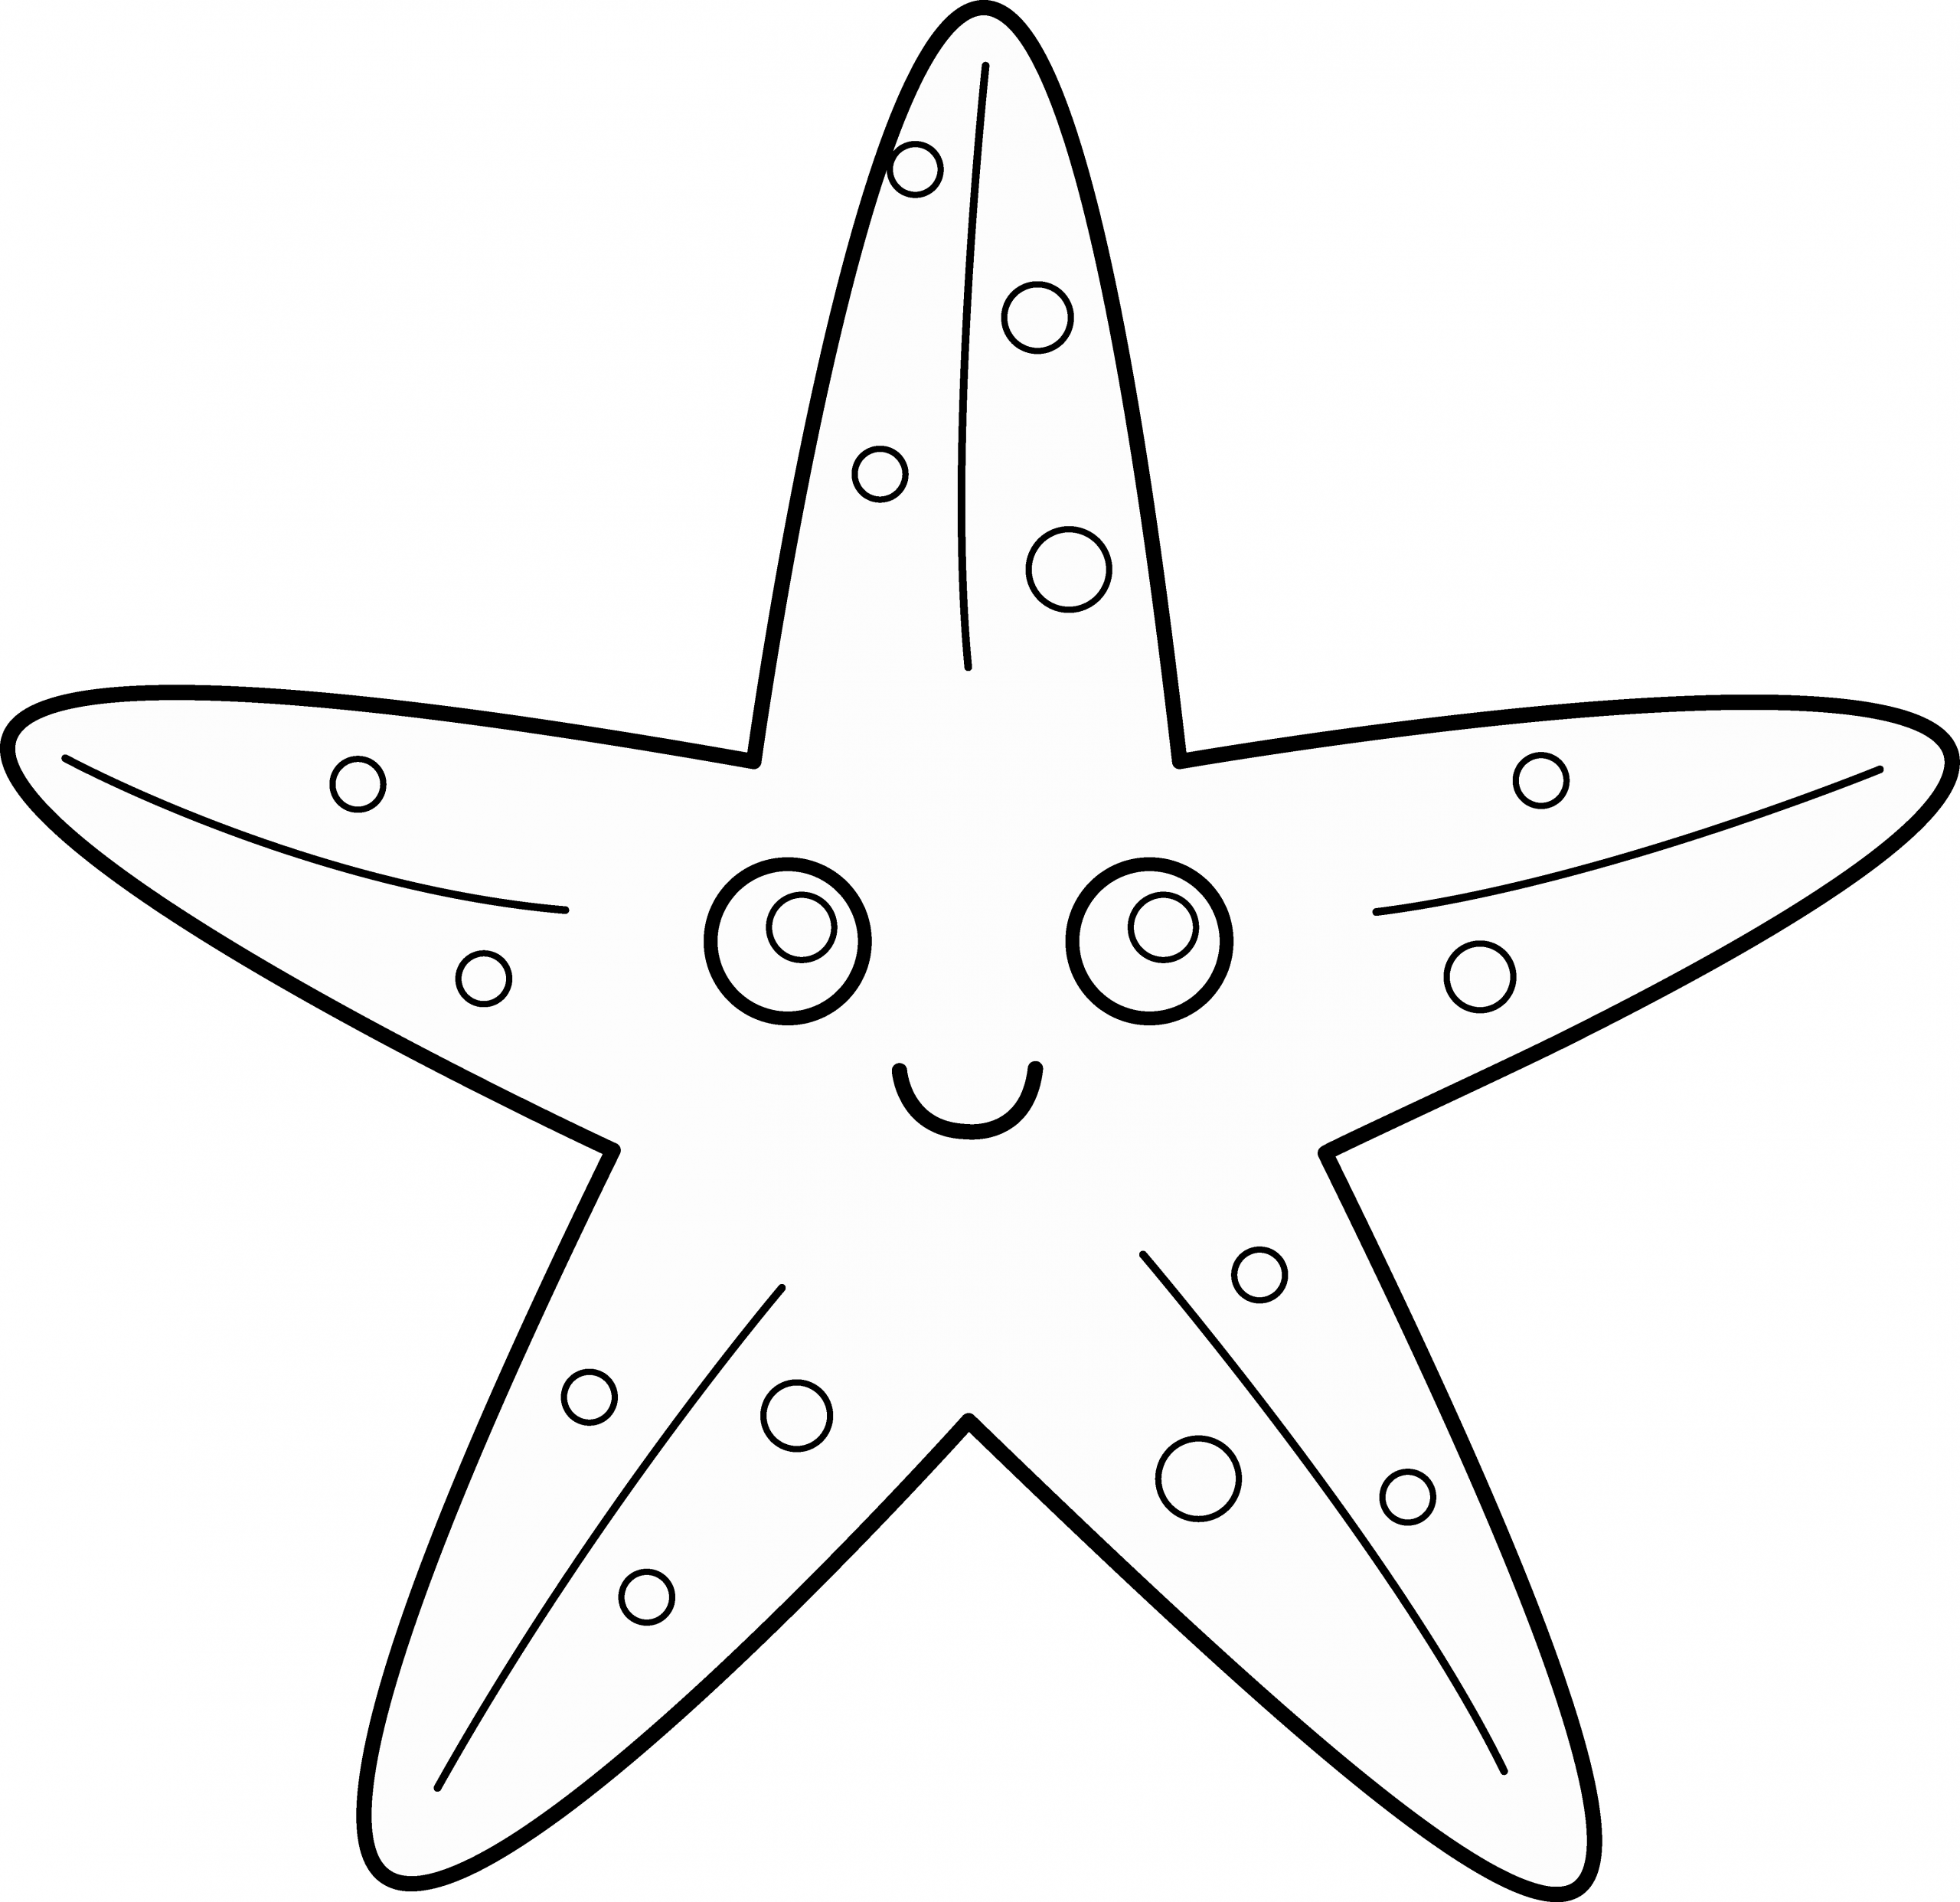 Star Template with Lines Lovely Cute Starfish Line Art Free Clip Art